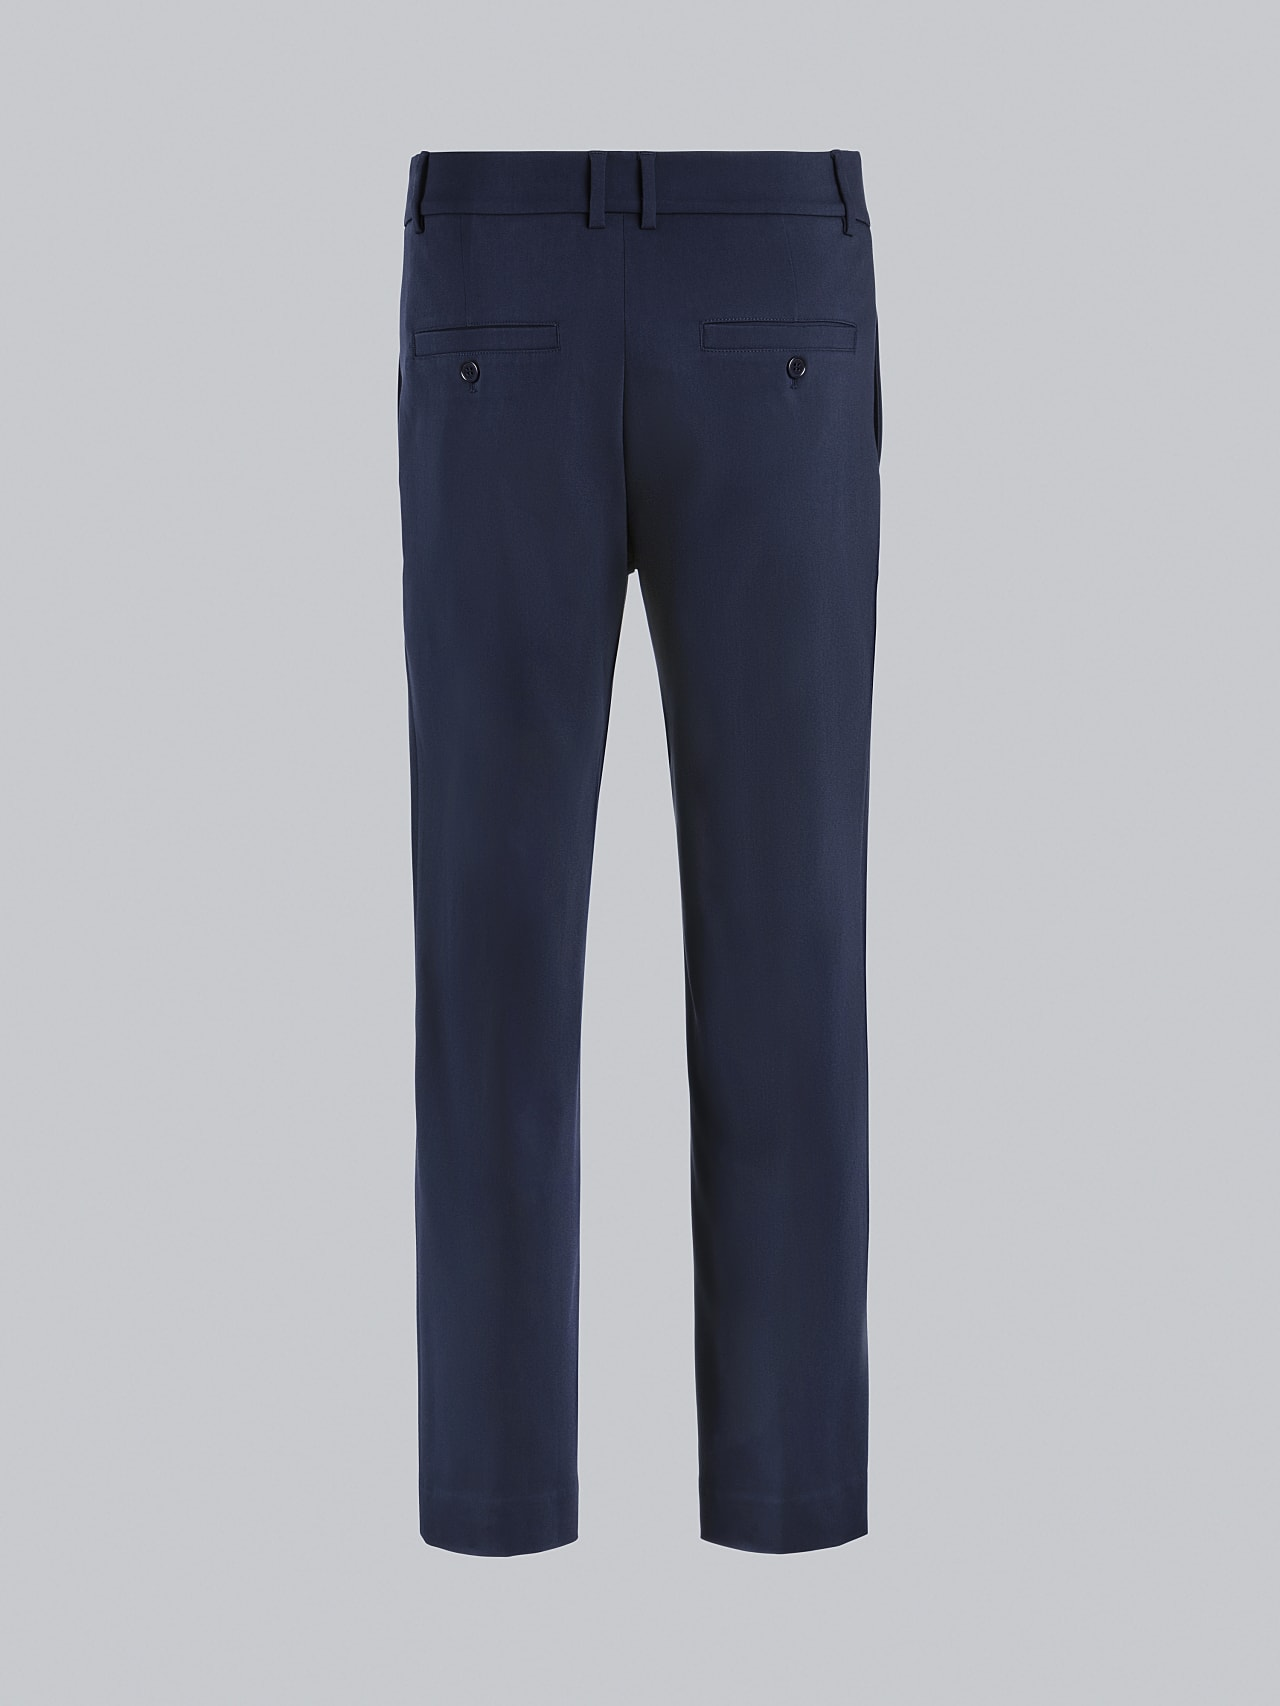 PELAN V1.Y5.02 Tapered Pants with Pleats navy Left Alpha Tauri